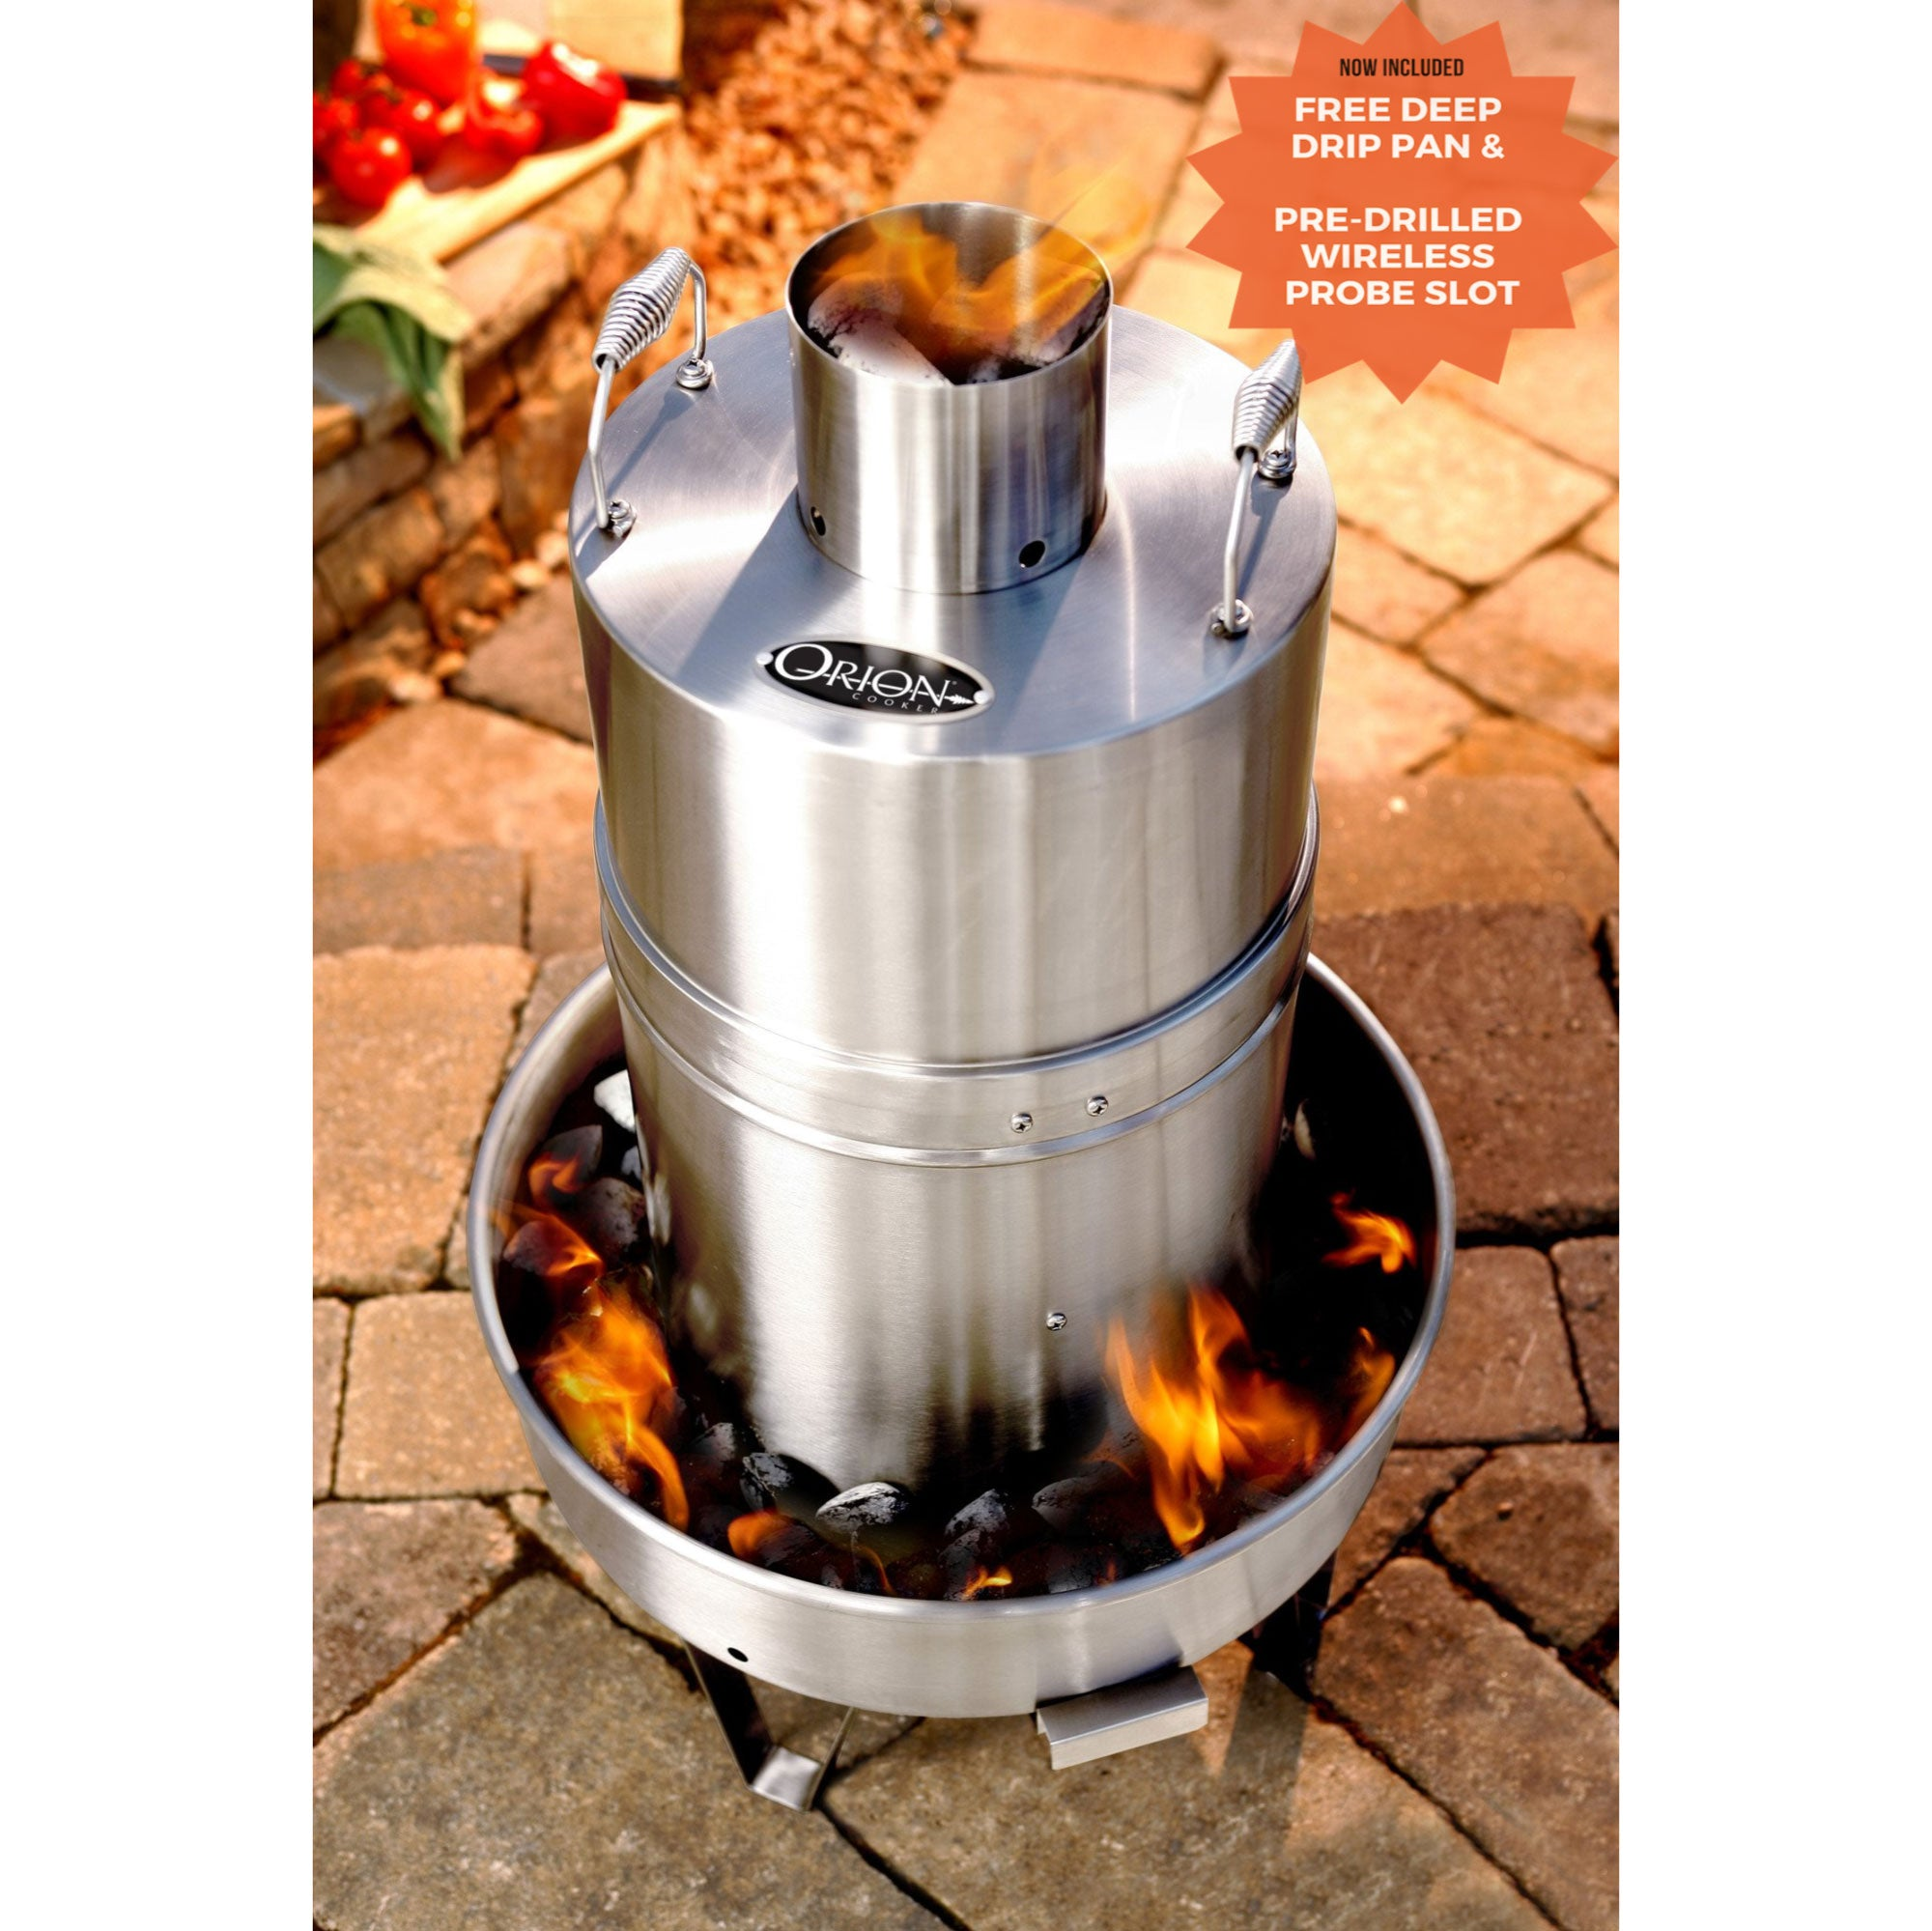 The Orion Cooker Outdoor Convection Cooker